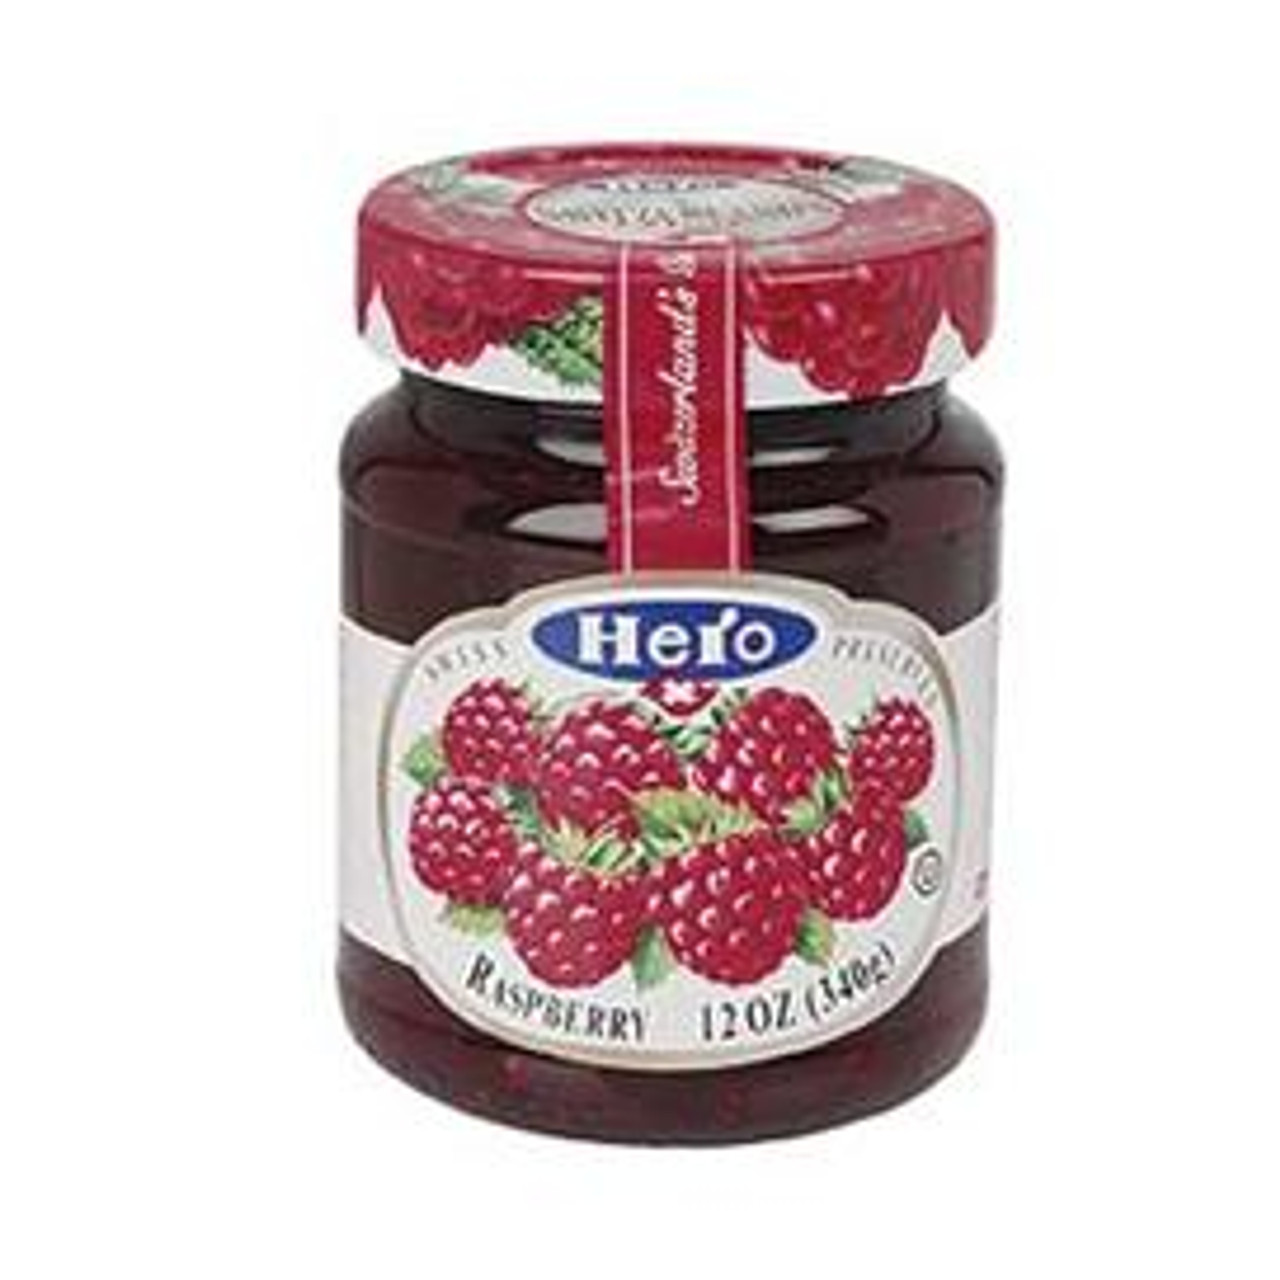 Raspberry Fruit Spread